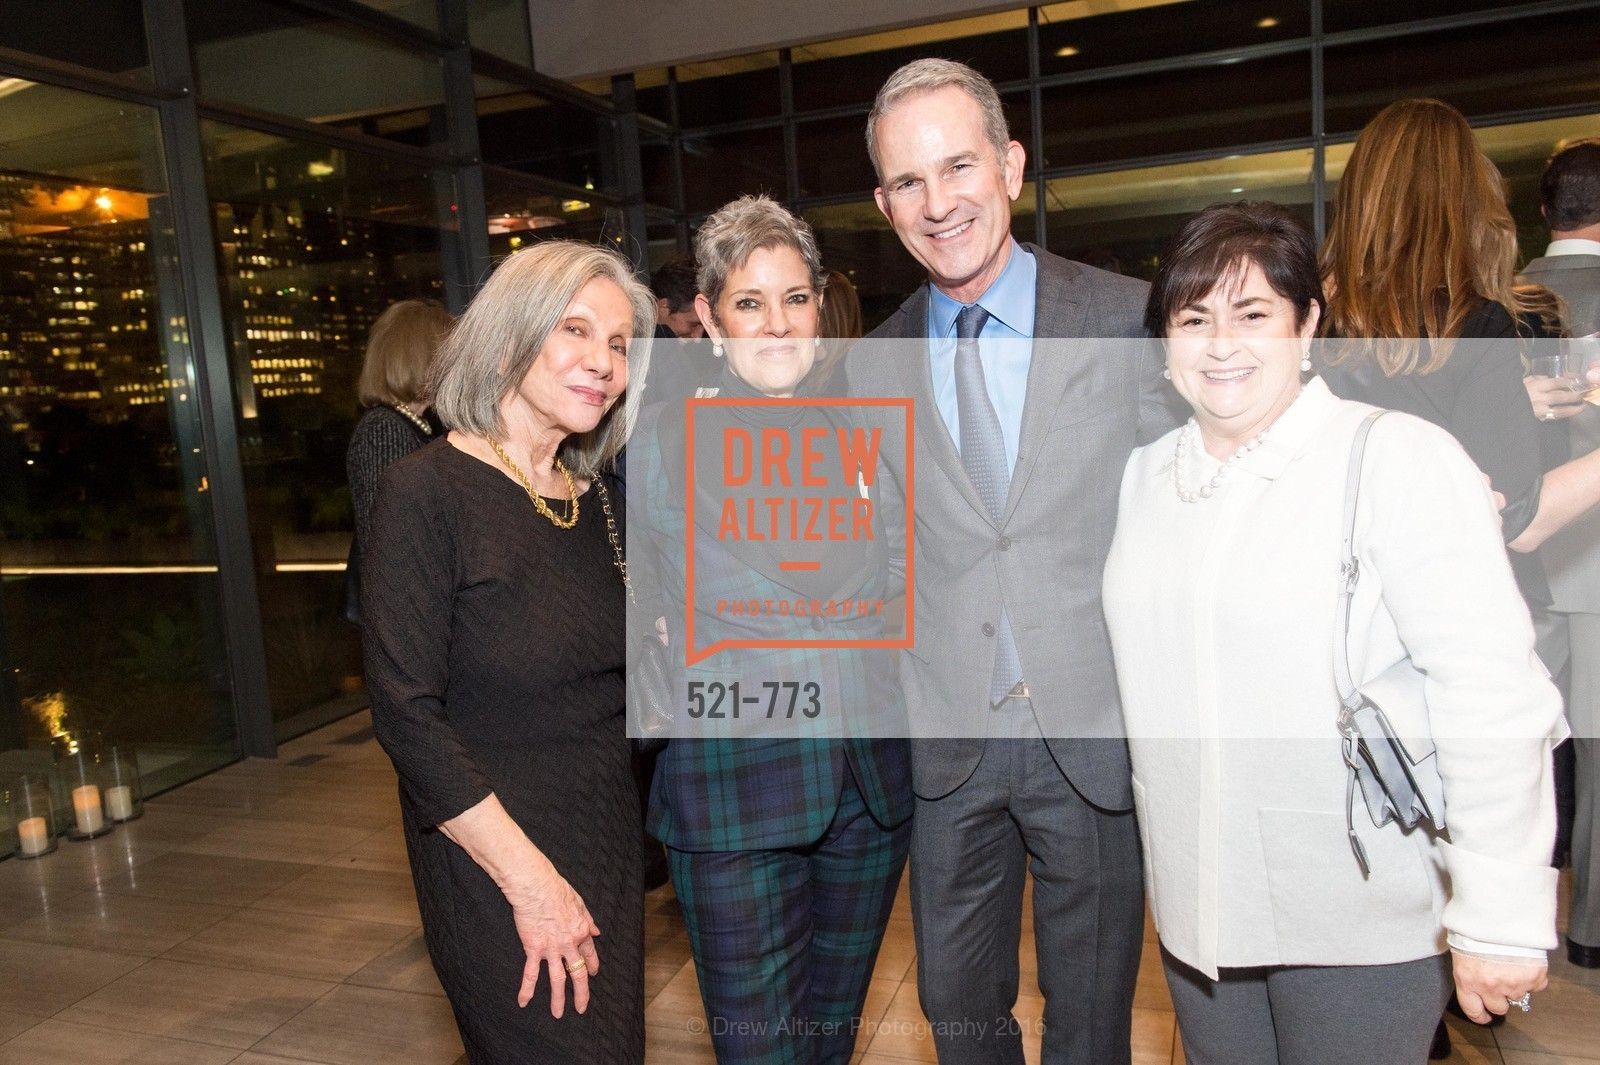 Analuz Holloway, Mary Lou Castellanos, Jeffrey Gibson, Janet Schindler, Sotheby's International Realty's Celebrates the New Year, The Battery, Penthouse. 717 Battery St, January 27th, 2016,Drew Altizer, Drew Altizer Photography, full-service agency, private events, San Francisco photographer, photographer california